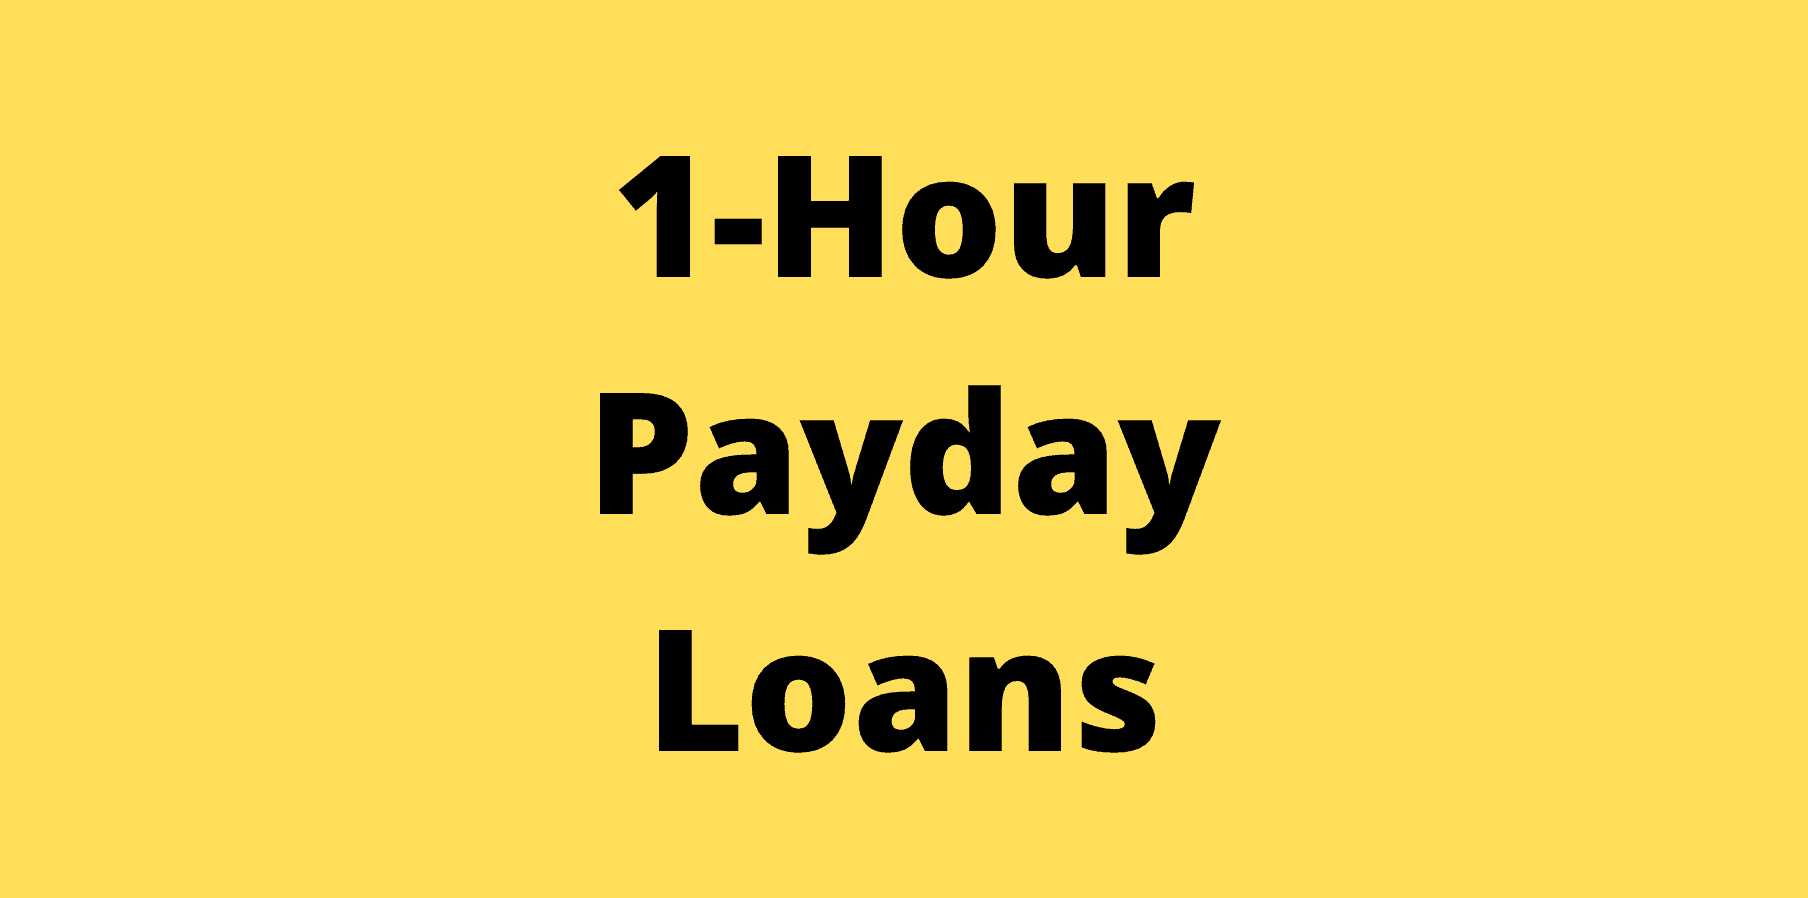 1-hour payday loans Australia